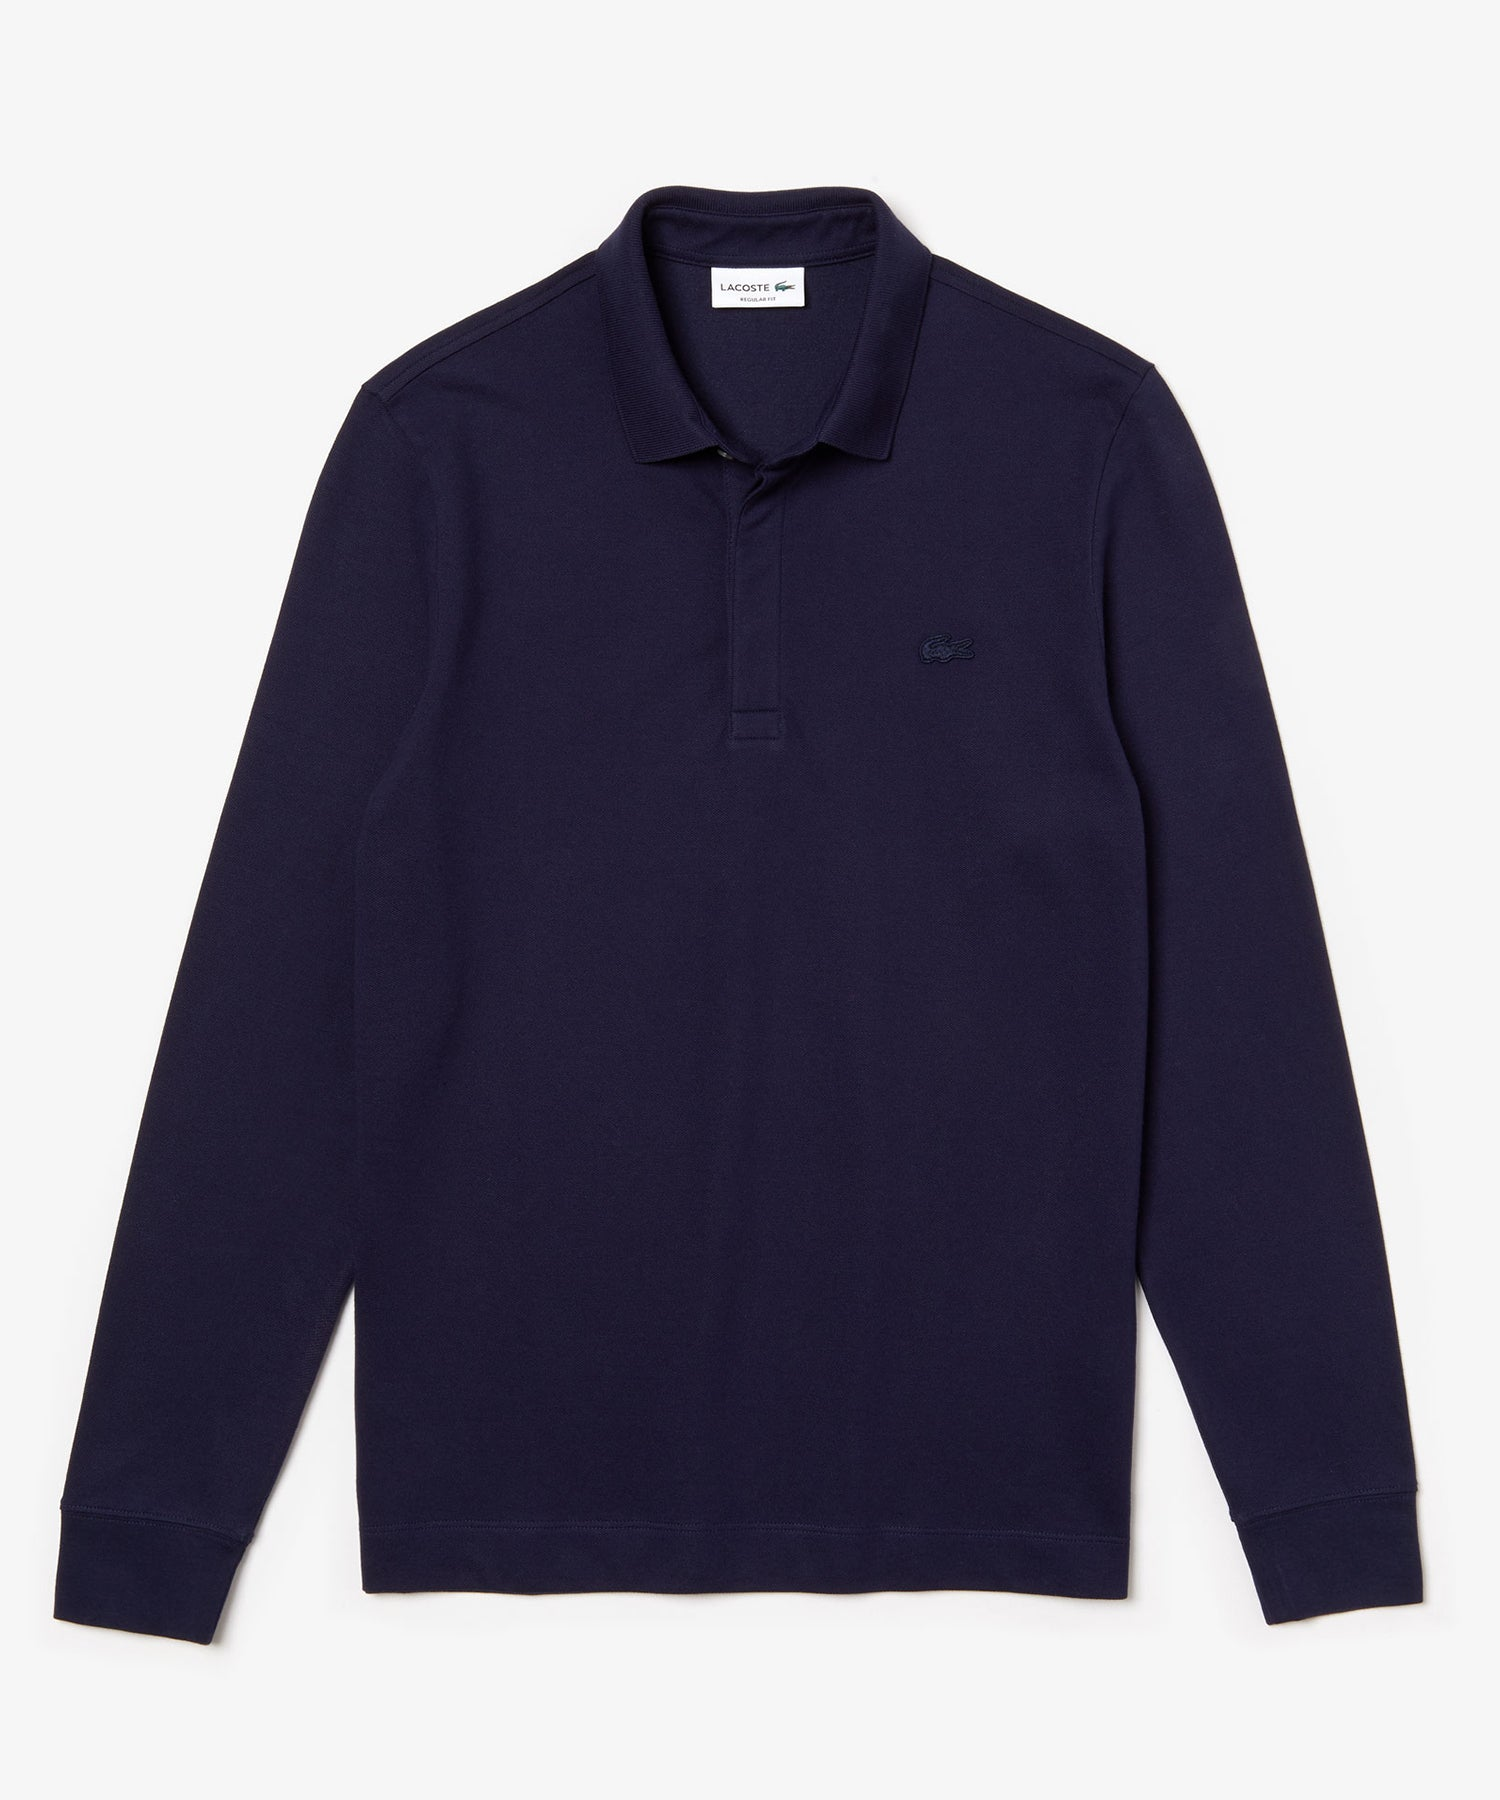 Lacoste Regular Fit Long-Sleeve Stretch Cotton Paris Polo in Navy